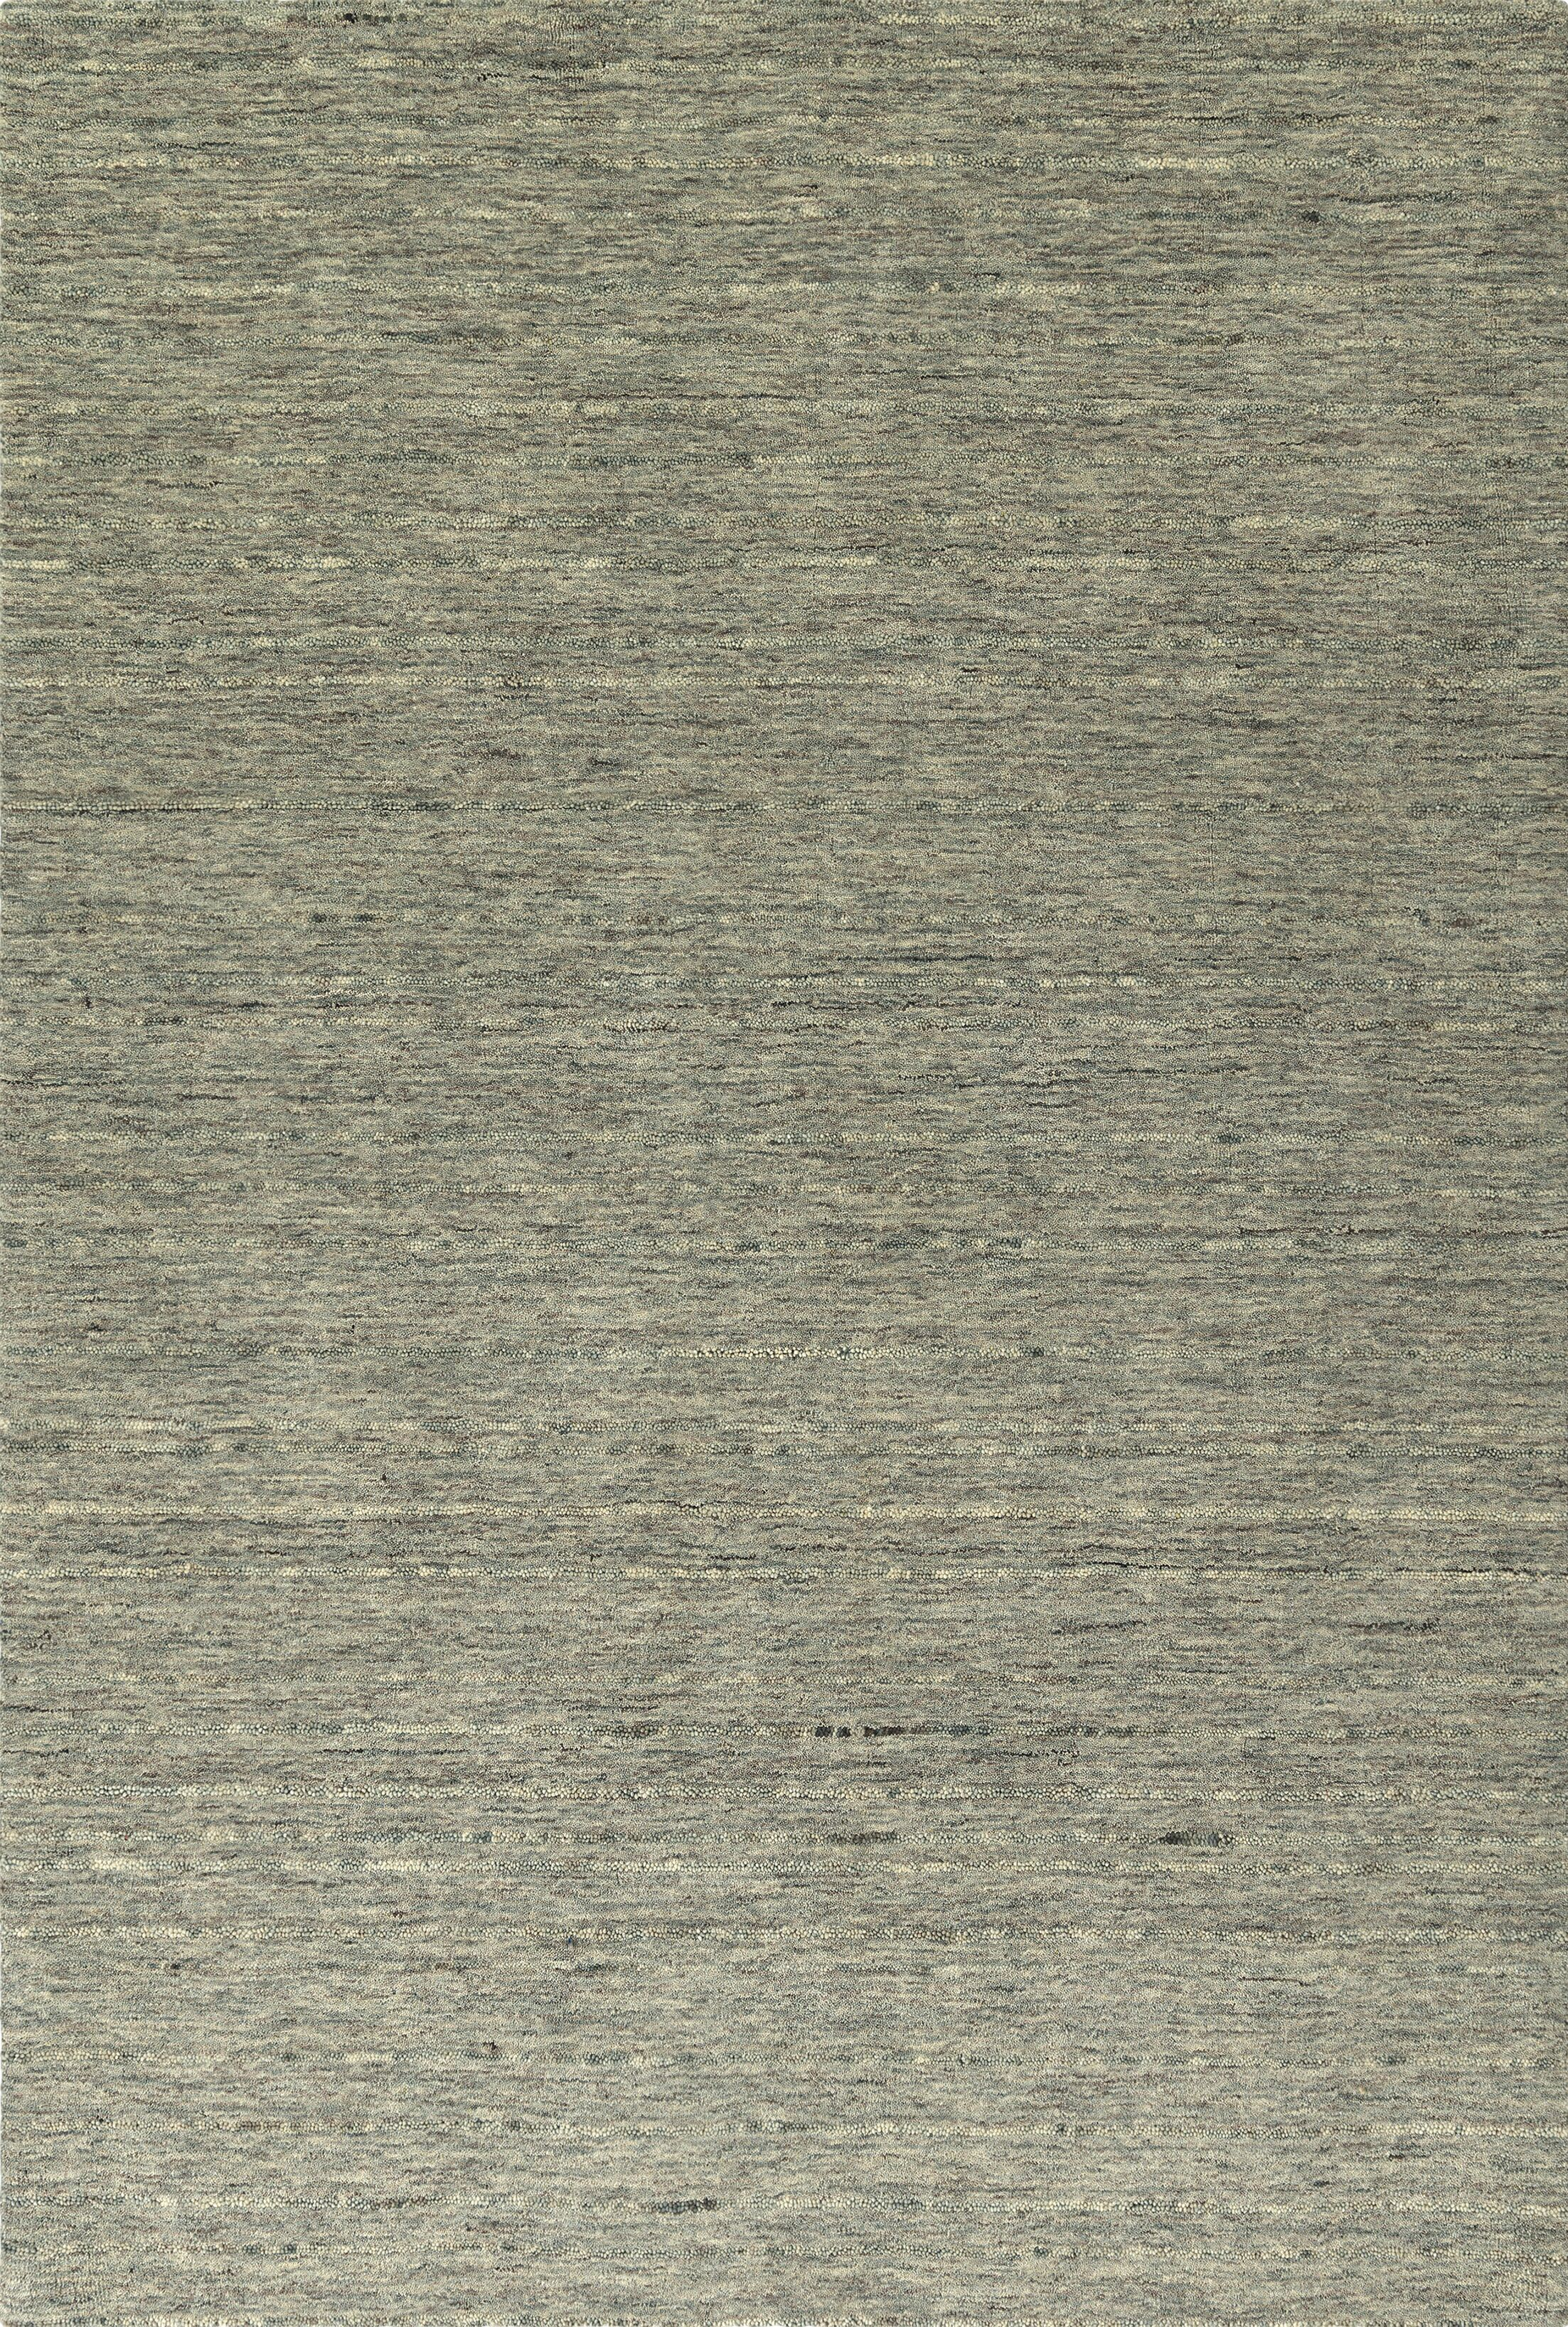 Glenville Hand-Woven Wool Fog Area Rug Rug Size: Rectangle 9' x 13'